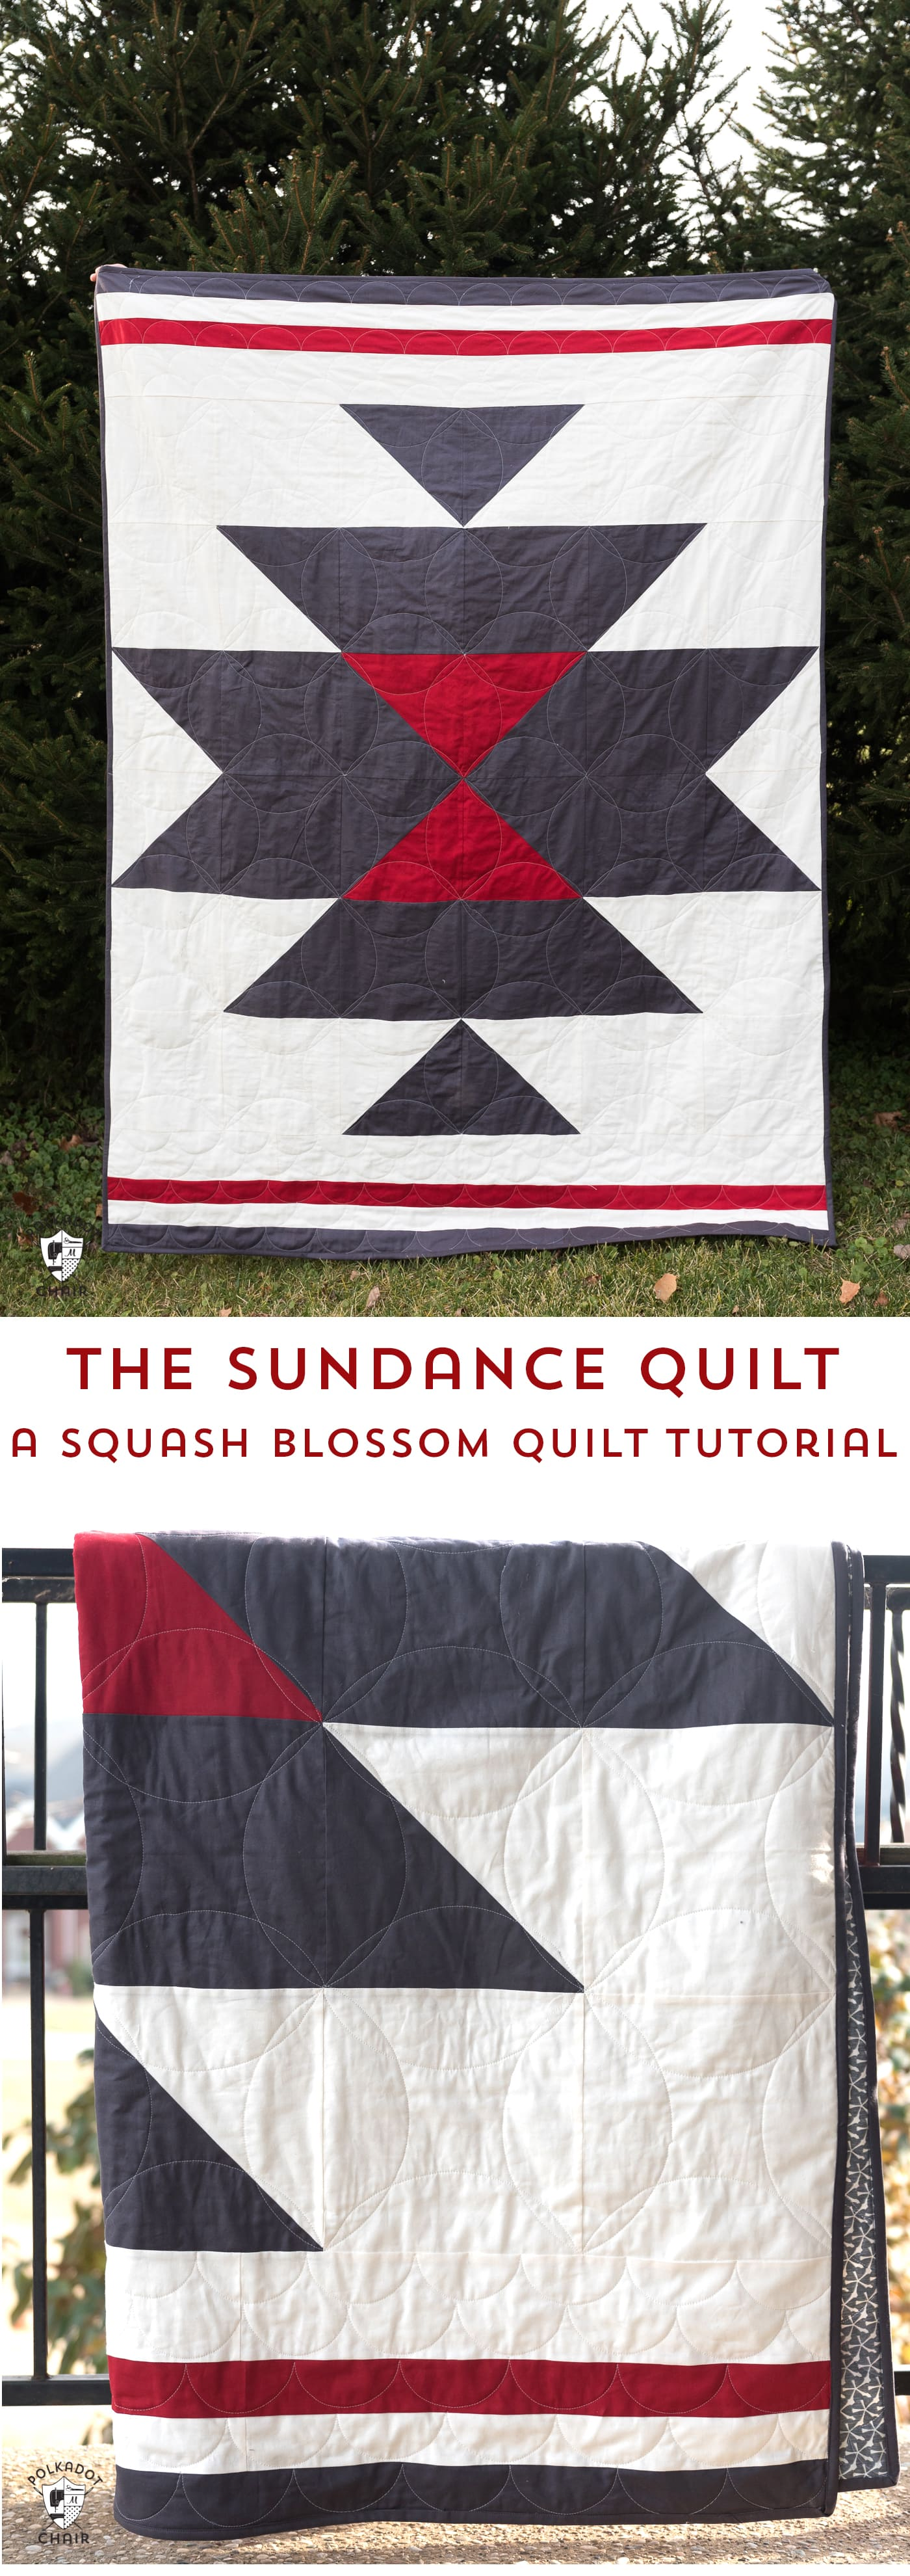 A free quilt pattern for a squash blossom quilt. A southwest style simple quilt pattern and free tutorial. #freequiltpattern #quilts #quilting #southweststyle #southwest #squashblossom